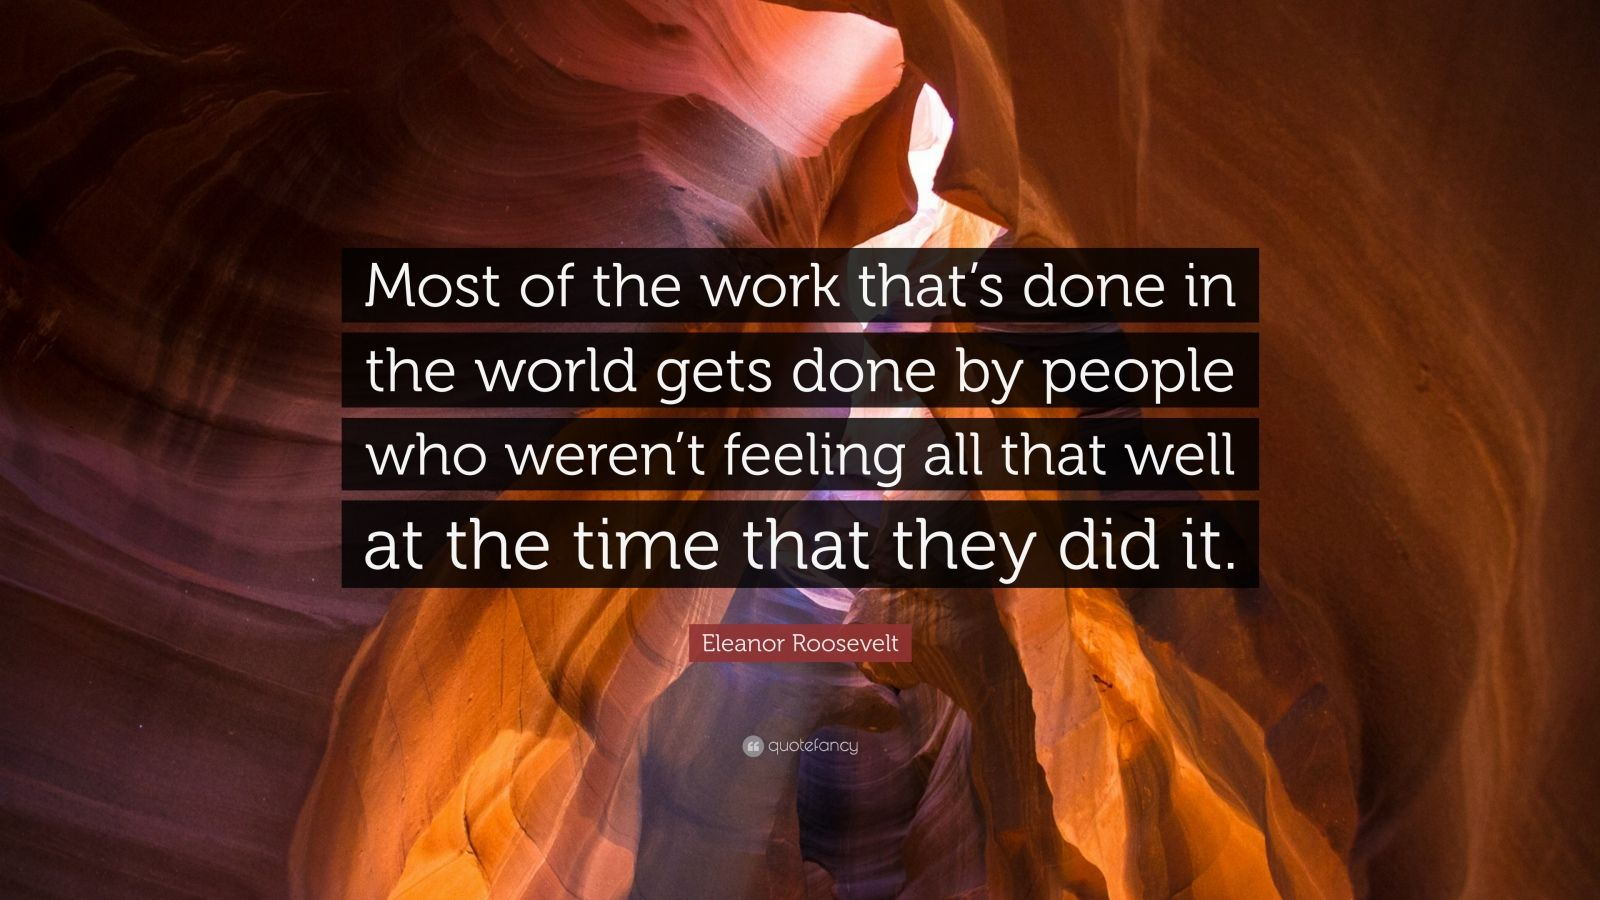 """Eleanor Roosevelt Quote: """"Most of the work that's done in the world gets done by people who weren't feeling all that well at the time that they did it."""""""